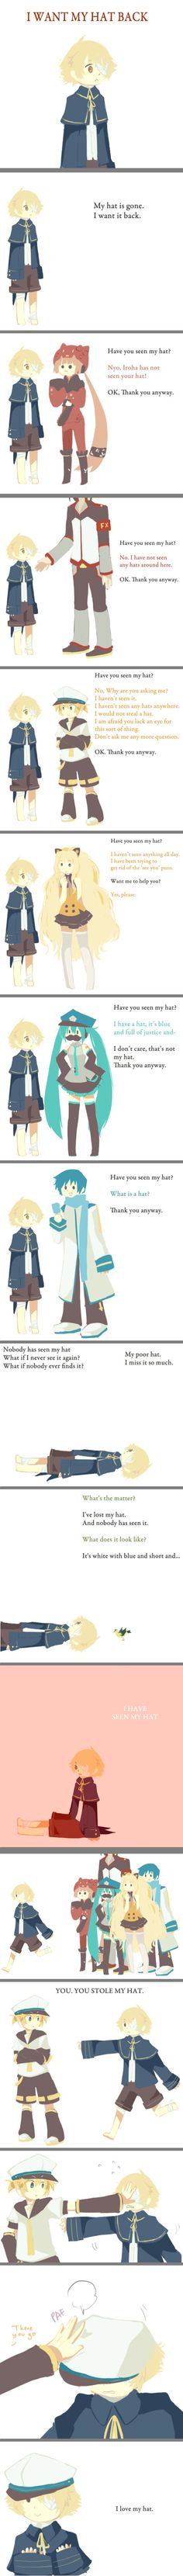 Oh Len, messing with Oliver like that! Your a Jerk! But I love you anyway!